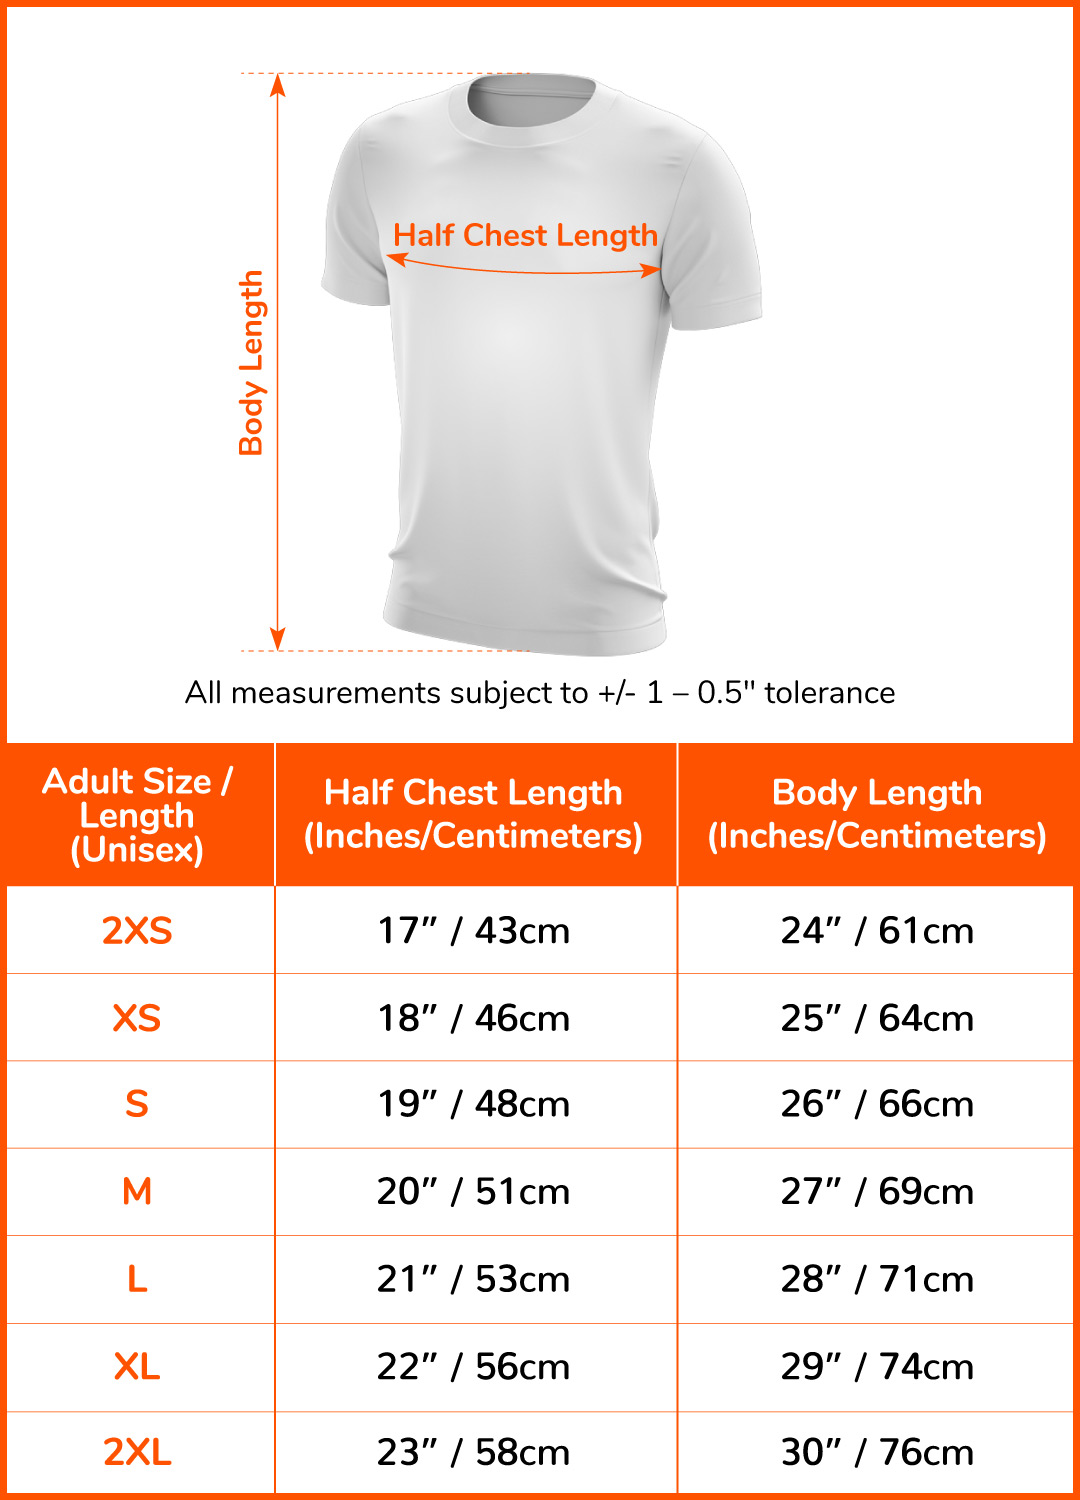 Finisher Tee - 6.3km#size-chart